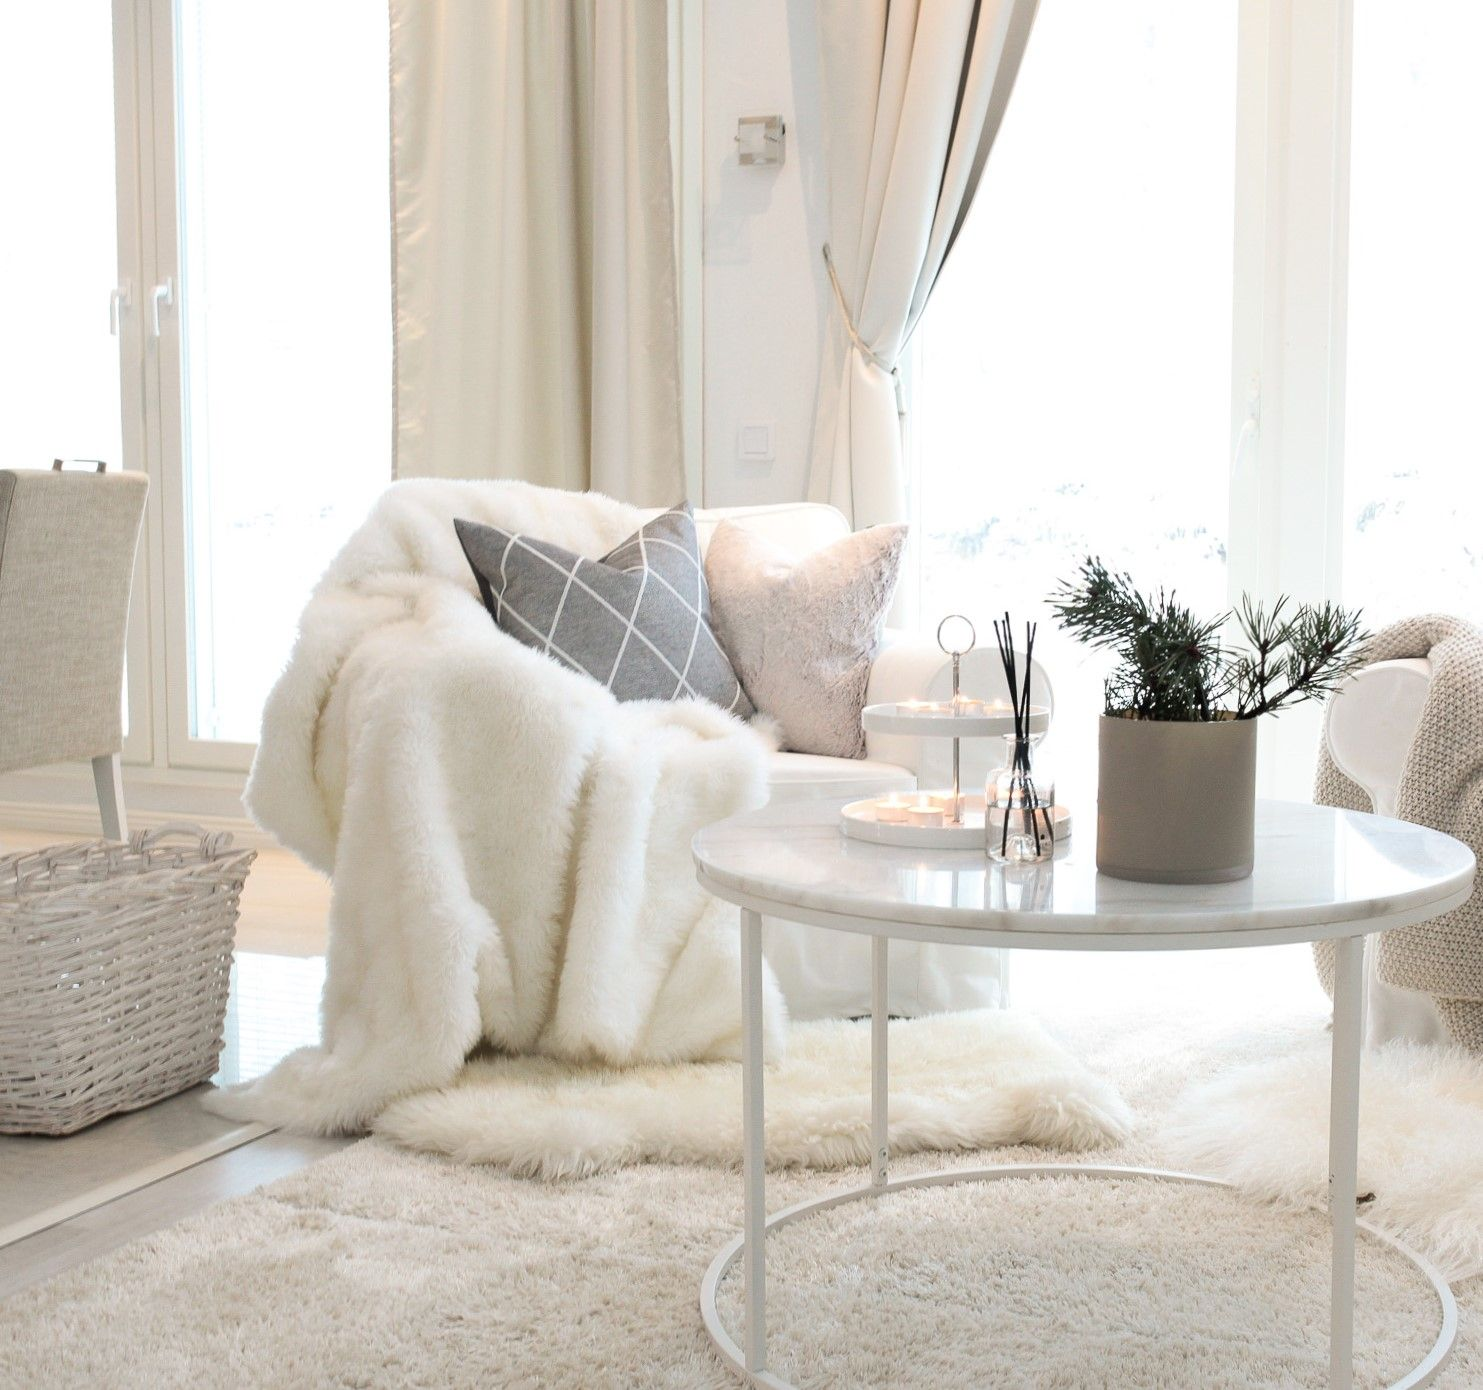 Pin by Tiia Janita on Home | Pinterest | Interiors, Living rooms and ...